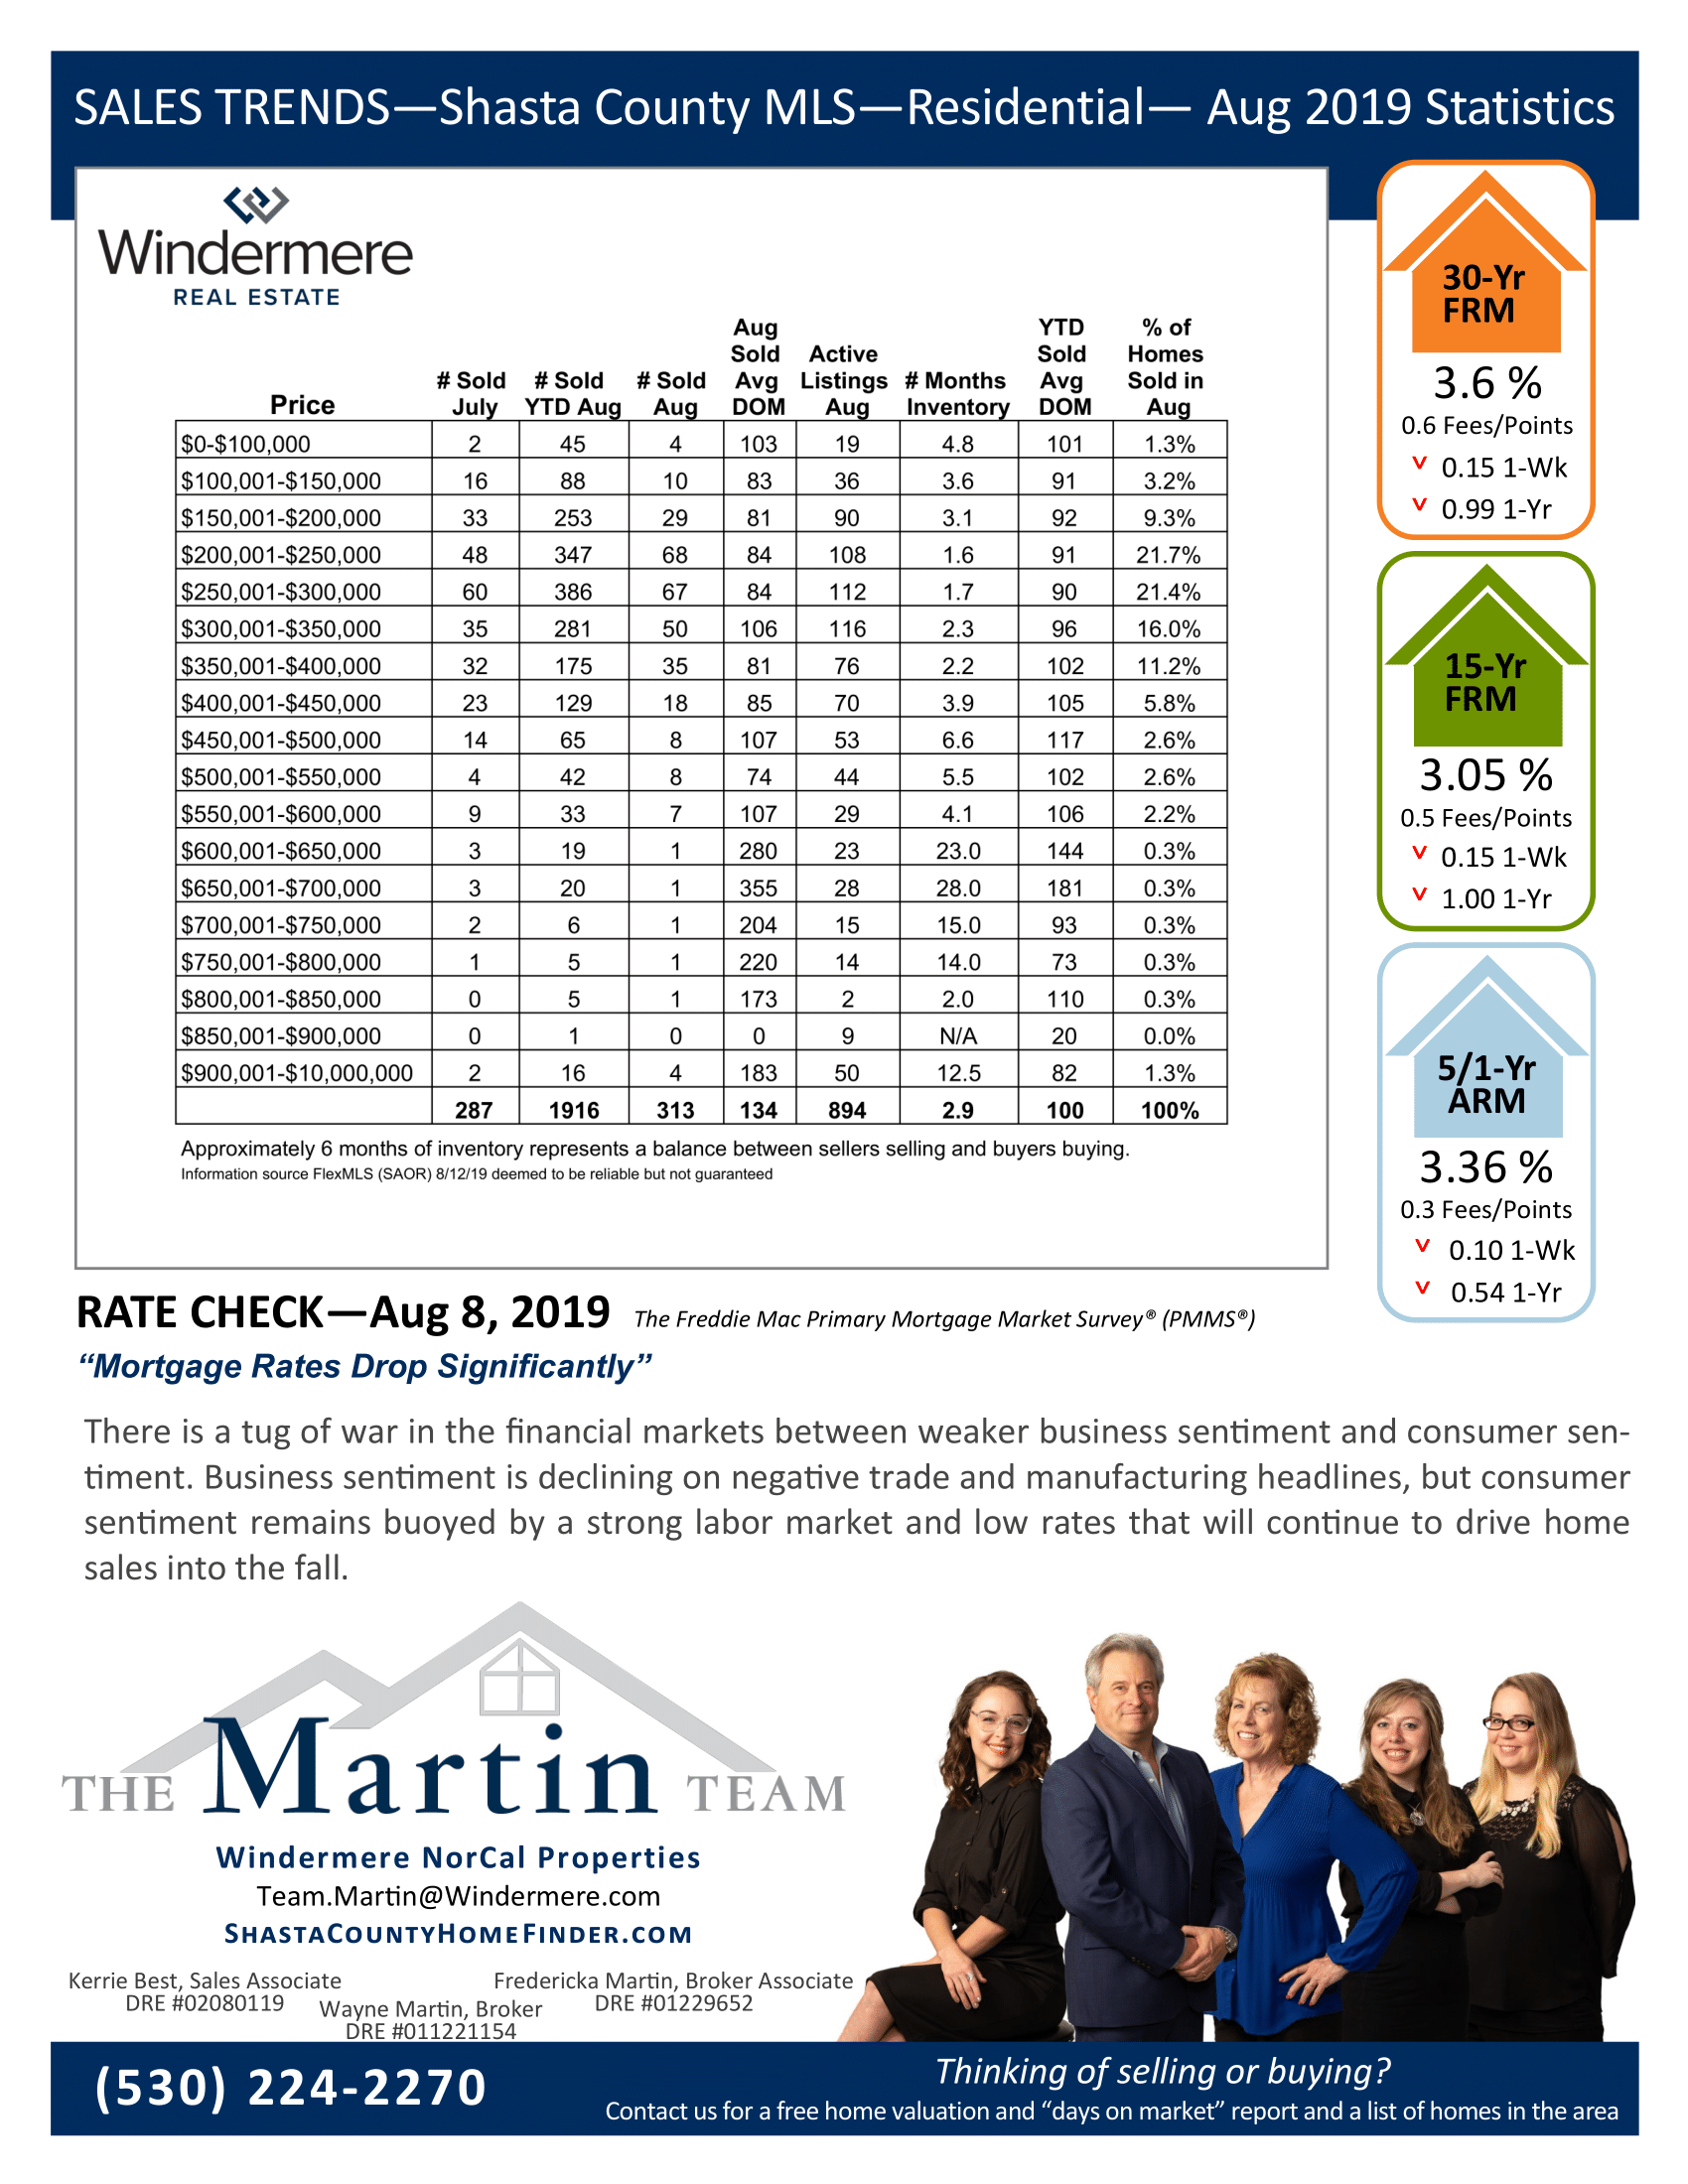 Sales Trends Reports August 2019. Mortgage rates and statistics on residential sales for August 2019.